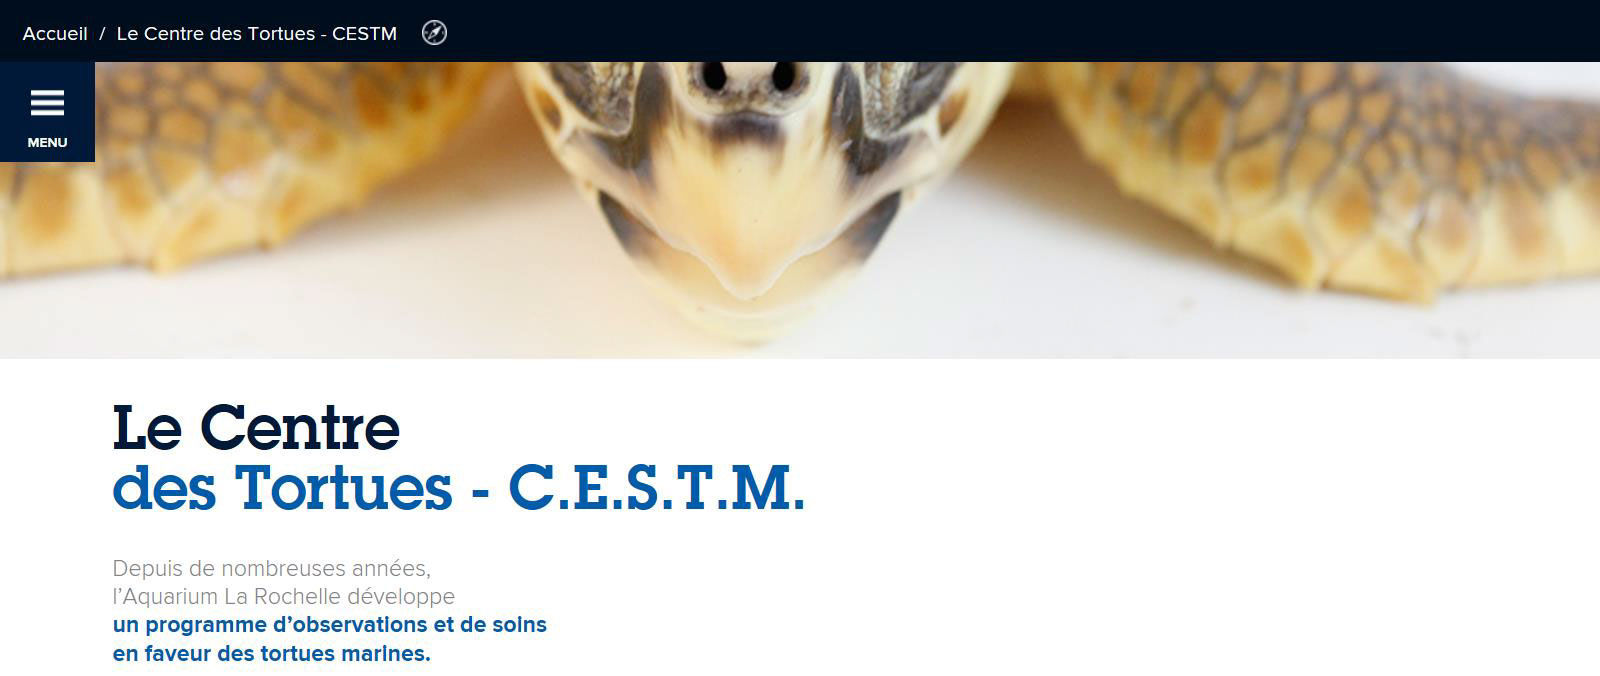 Le Centre des Tortues - CESTM